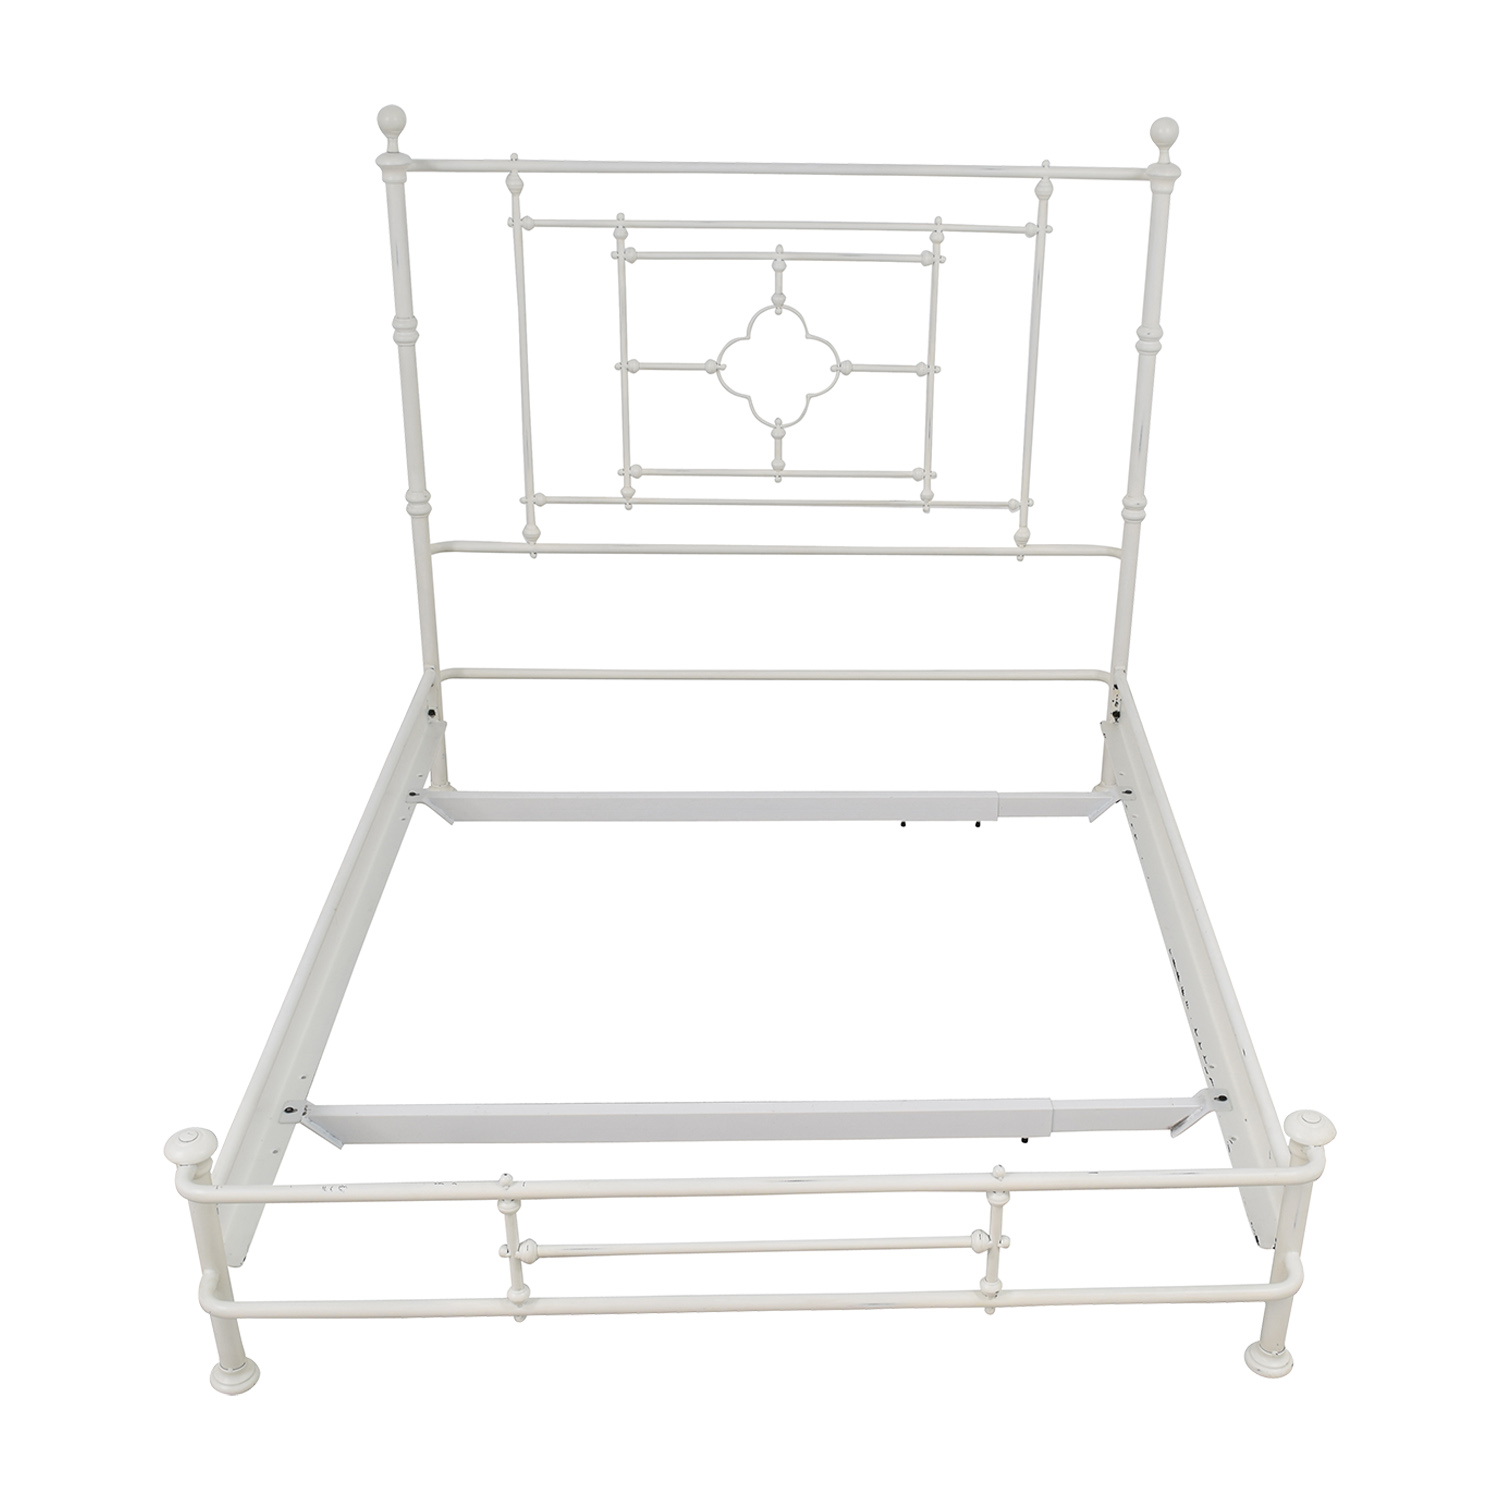 Restoration Hardware Restoration Hardware White Metal Queen Bed Frame for sale